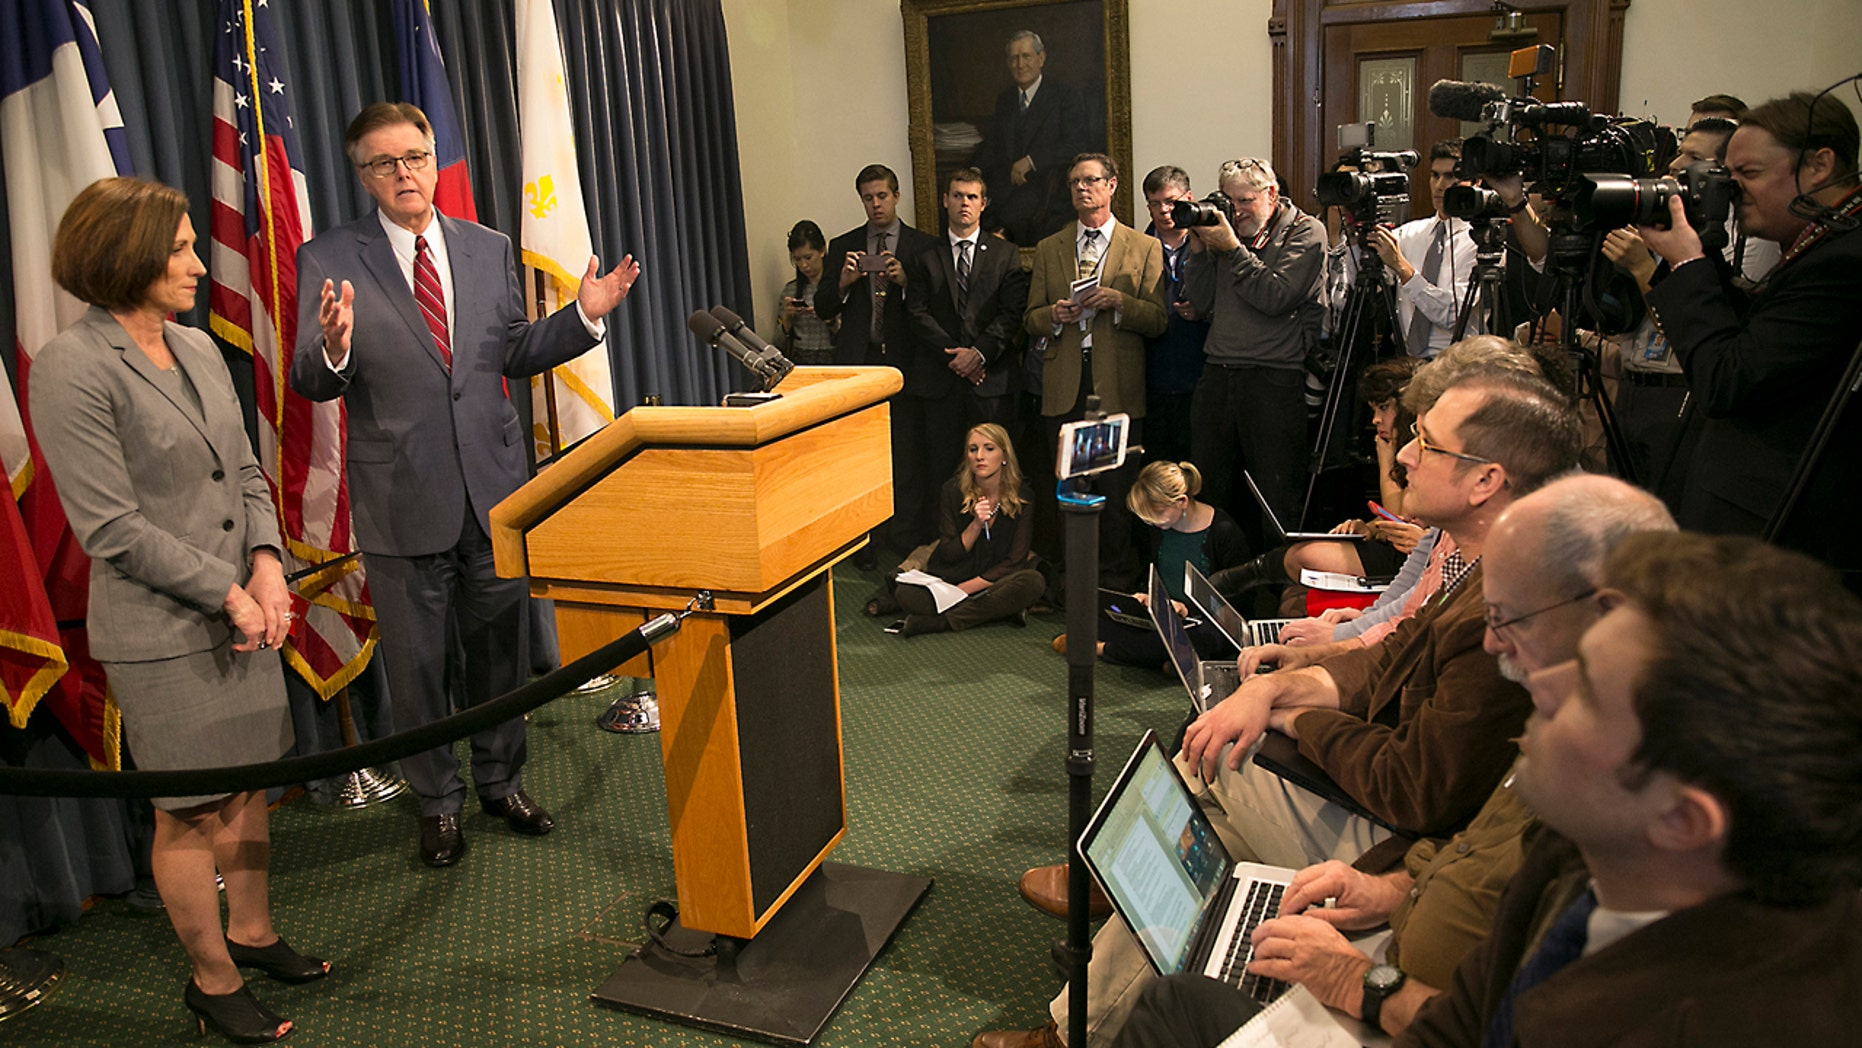 Texas Lt. Gov. Dan Patrick and Senator Lois Kolkhorst introduced Senate Bill 6 known as the Texas Privacy Act, which provides solutions to the federal mandate of transgender bathrooms, showers and dressing rooms in all Texas schools. The two legislators answer questions from a press availability Thursday, Jan. 5, 2017, in the Senate Conference room at the State Capitol in Austin, Texas. (Ralph Barrera/Austin American-Statesman via AP)